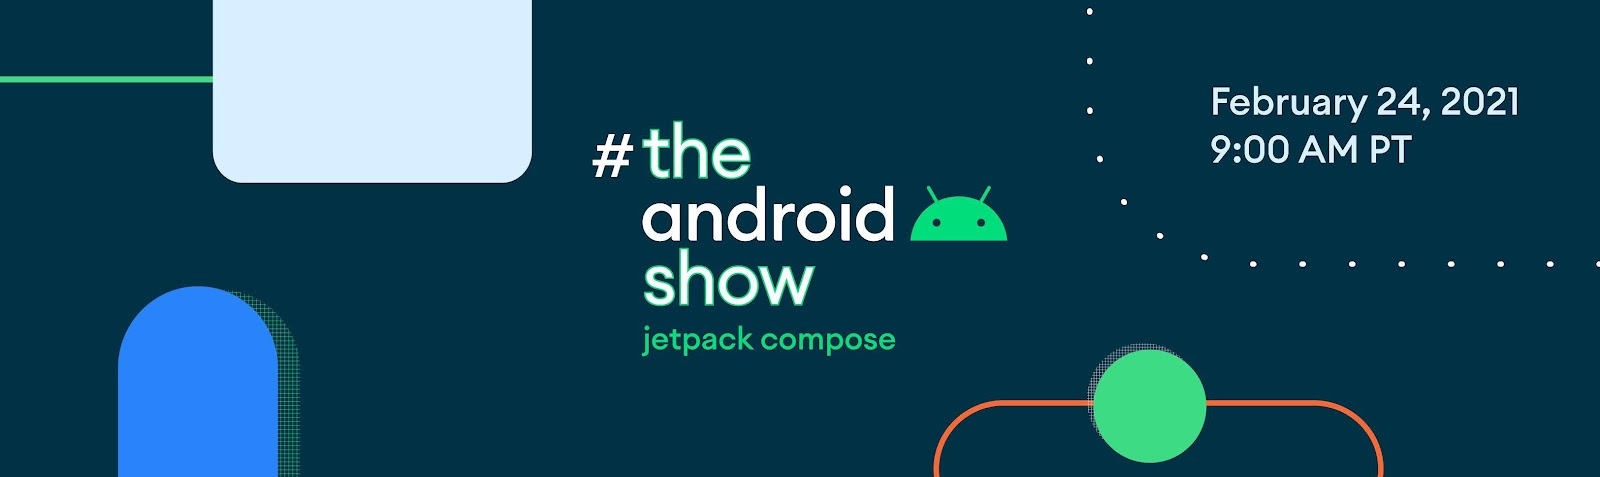 Android Show: Jetpack Compose, 2월 24일 오전 9시(PT)